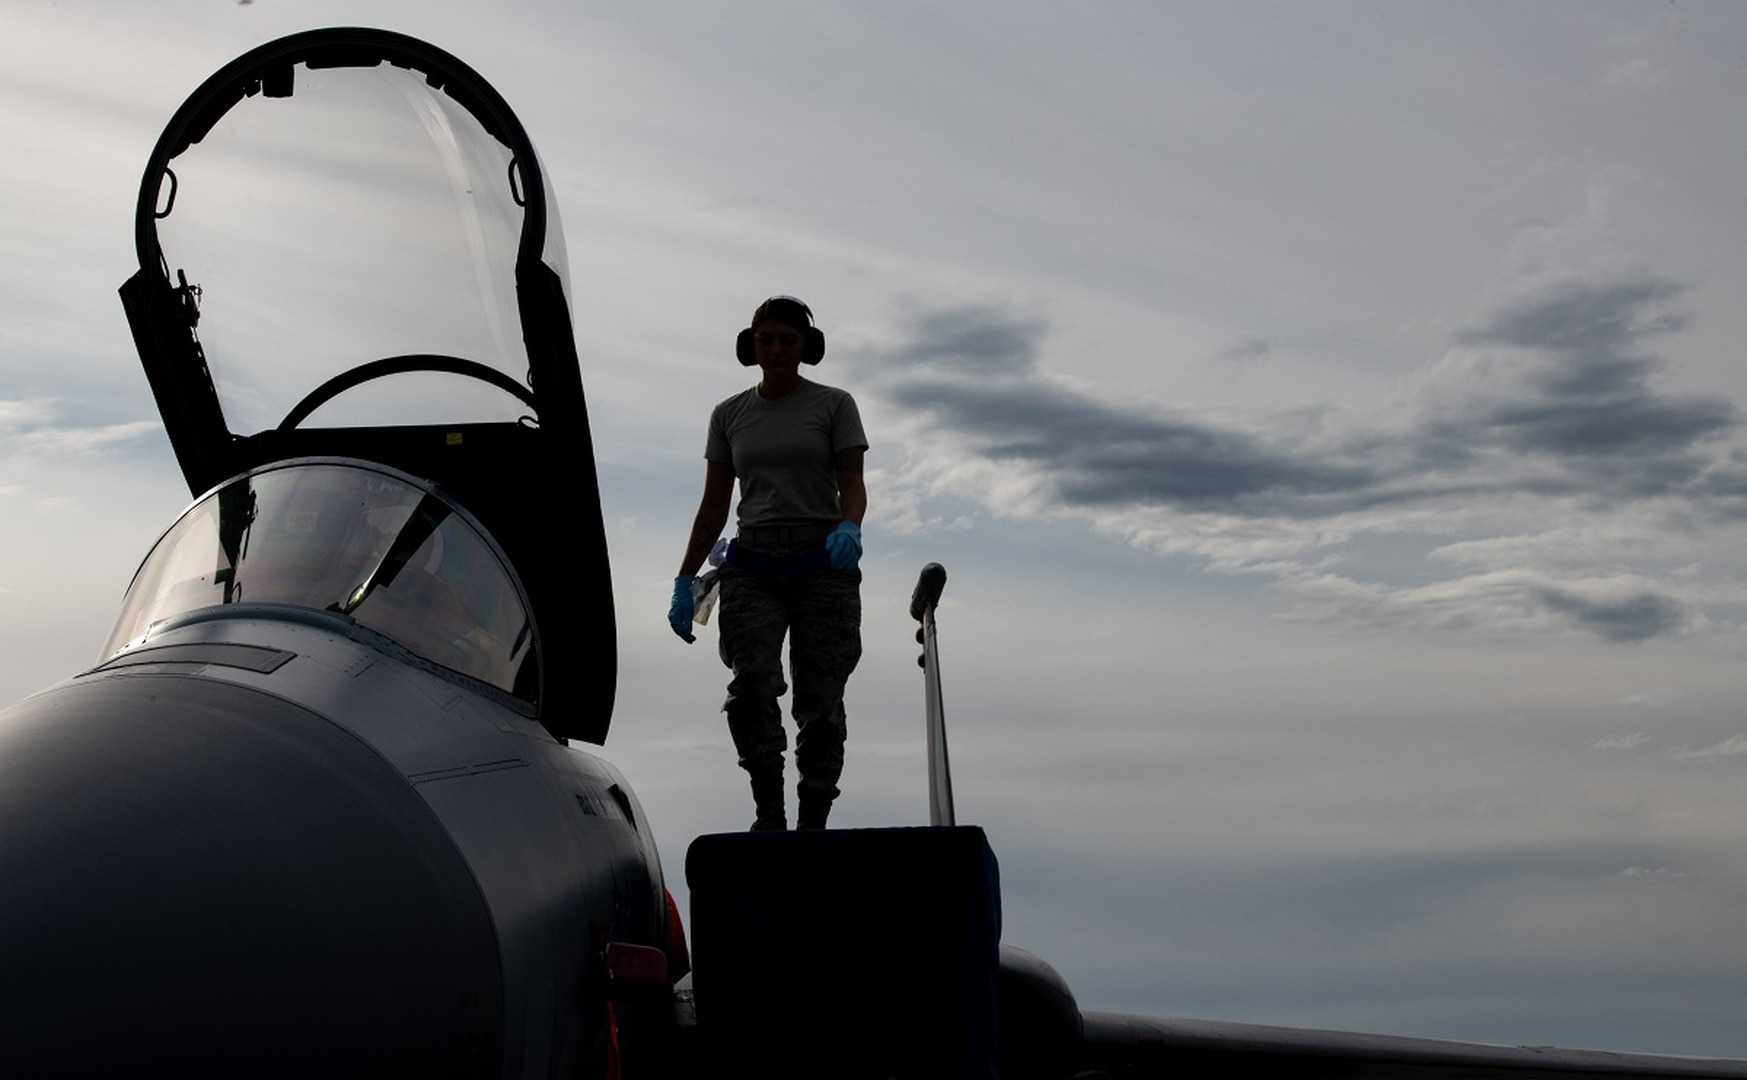 An airman from the 44th Aircraft Maintenance Squadron conducts a post-flight check on an F-15C Eagle with the 44th Fighter Squadron at Kadena Air Base, Japan, May 14. The aircraft had a mission-capable rate of 71.5 percent in fiscal 2018, one of the best in the fleet. (Staff Sgt. Micaiah Anthony/Air Force)